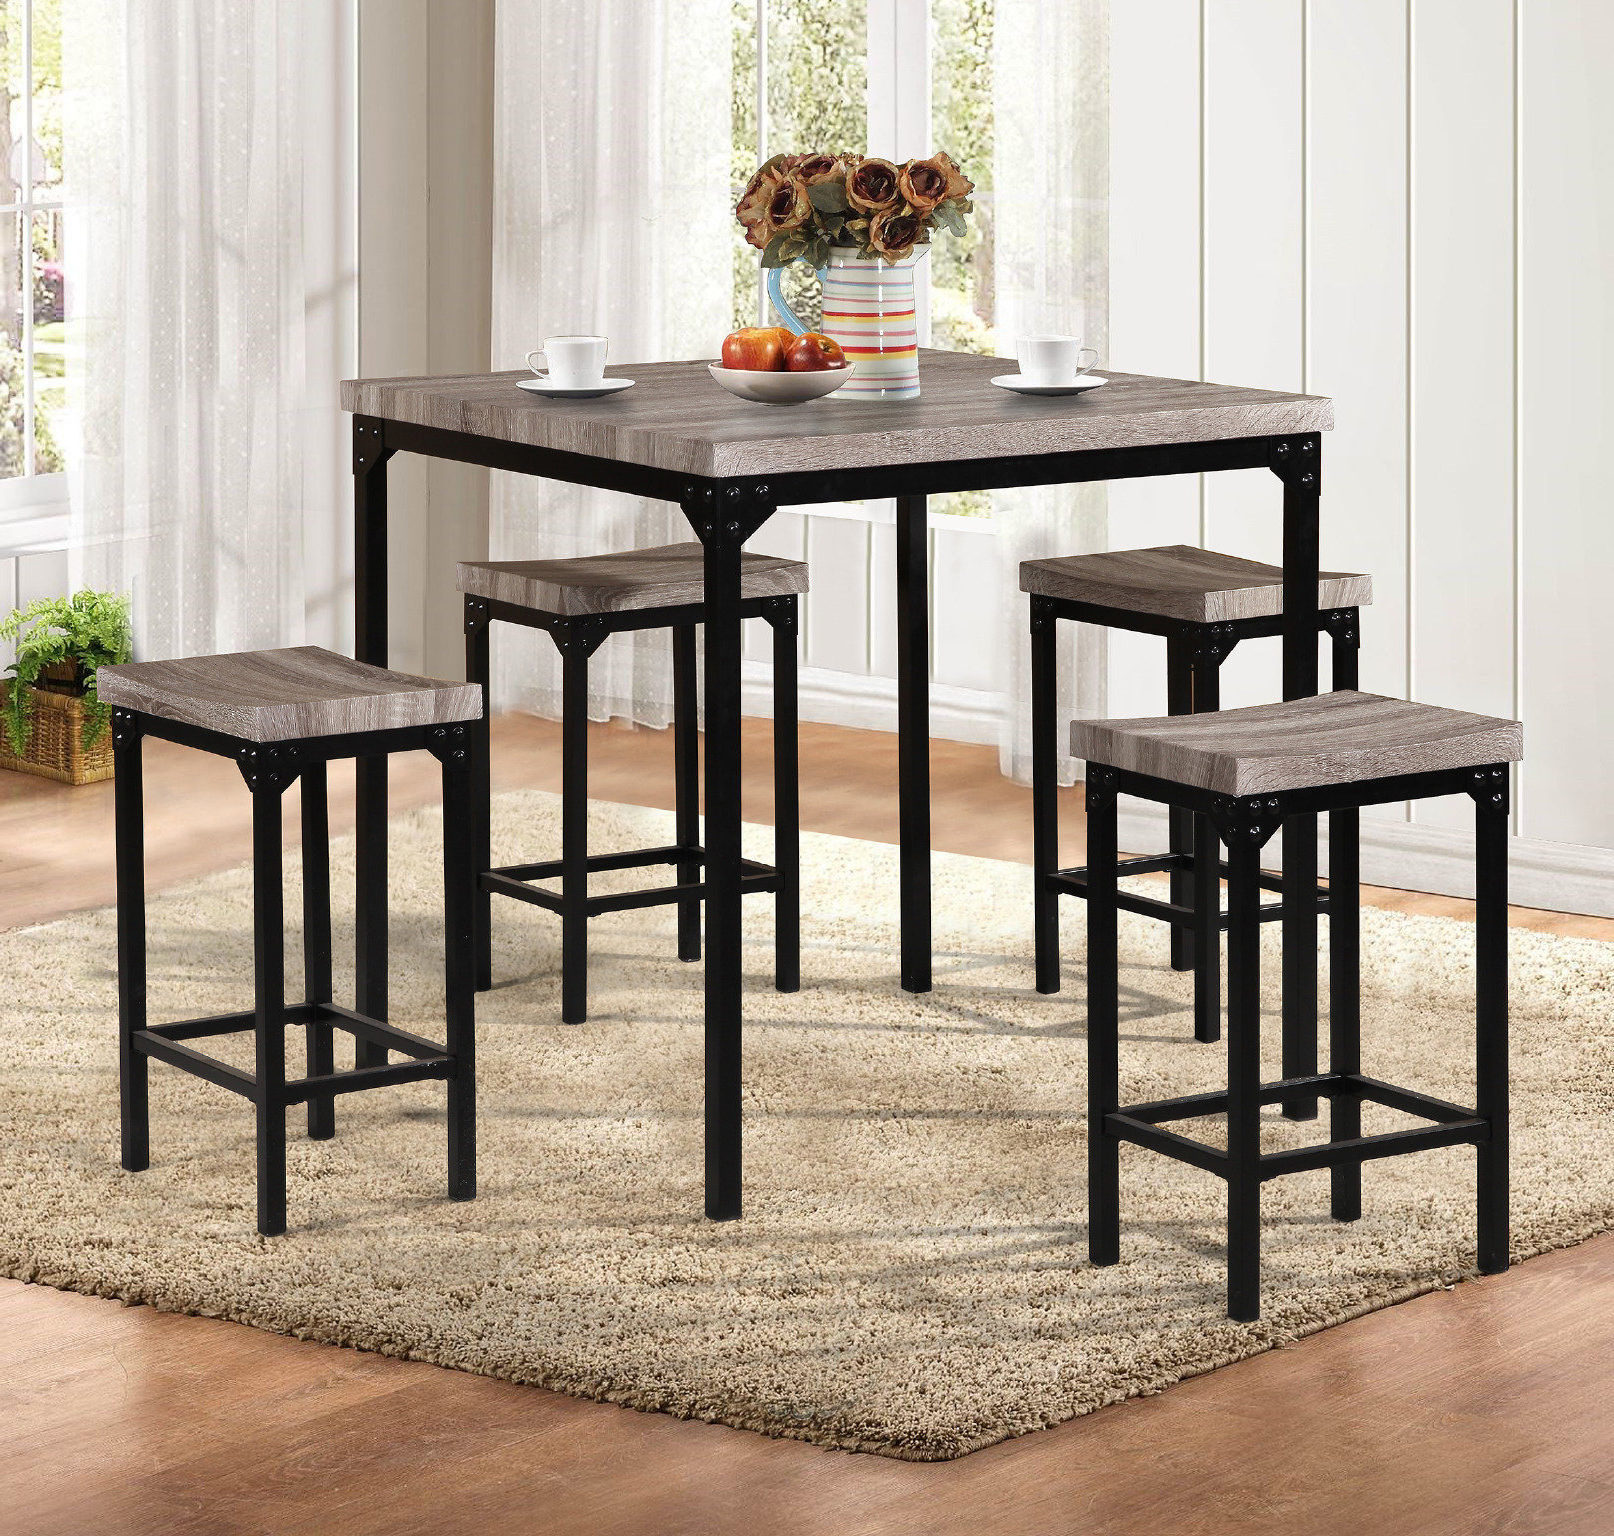 Denzel 5 Piece Counter Height Breakfast Nook Dining Sets Within Best And Newest Latitude Run Breen 5 Piece Pub Table Set (View 11 of 25)